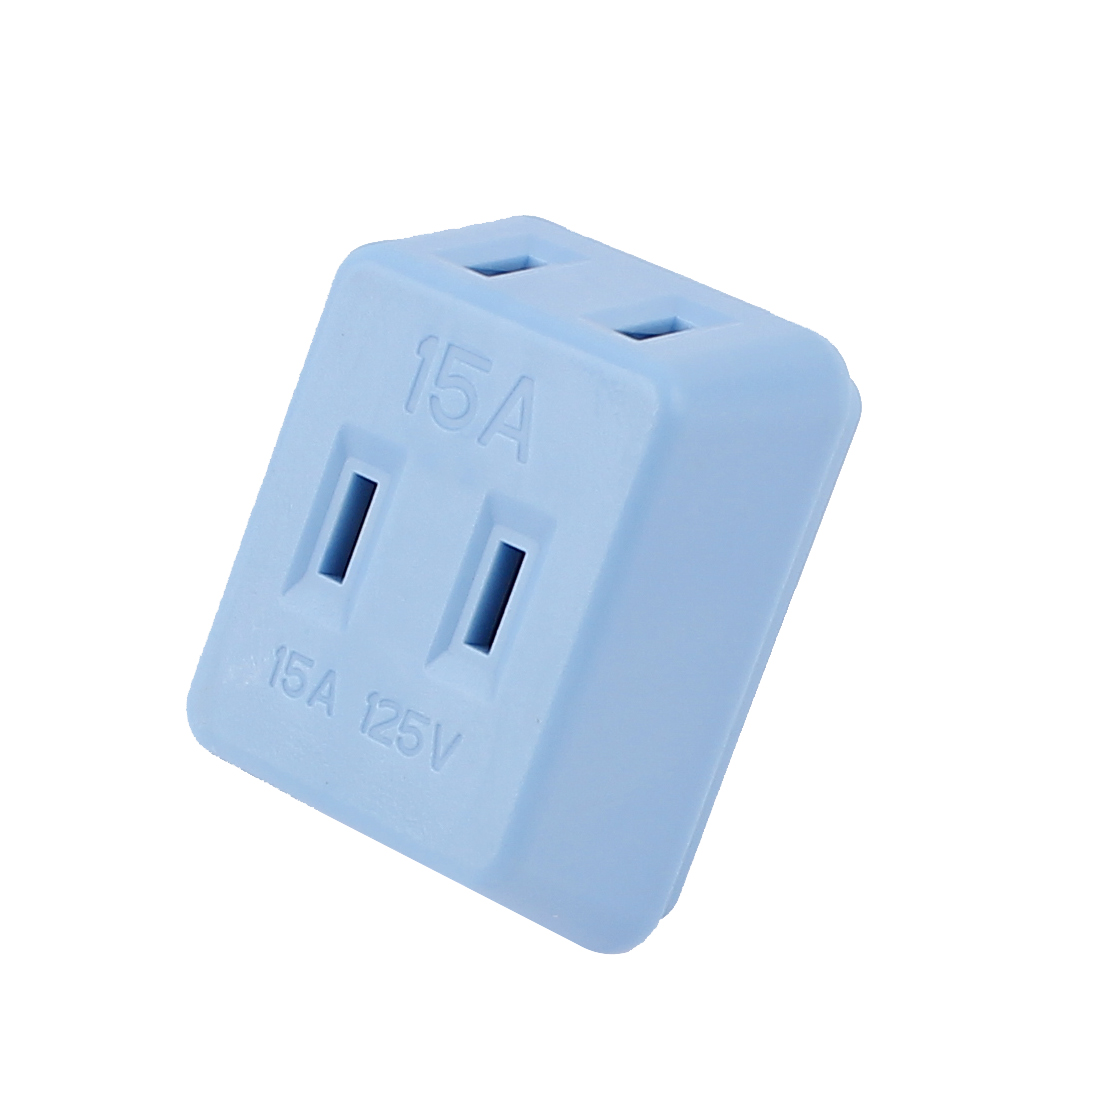 AC 125V 15A US Plug 1 to 3 Ways Power Charger Adapter Converter Socket Blue